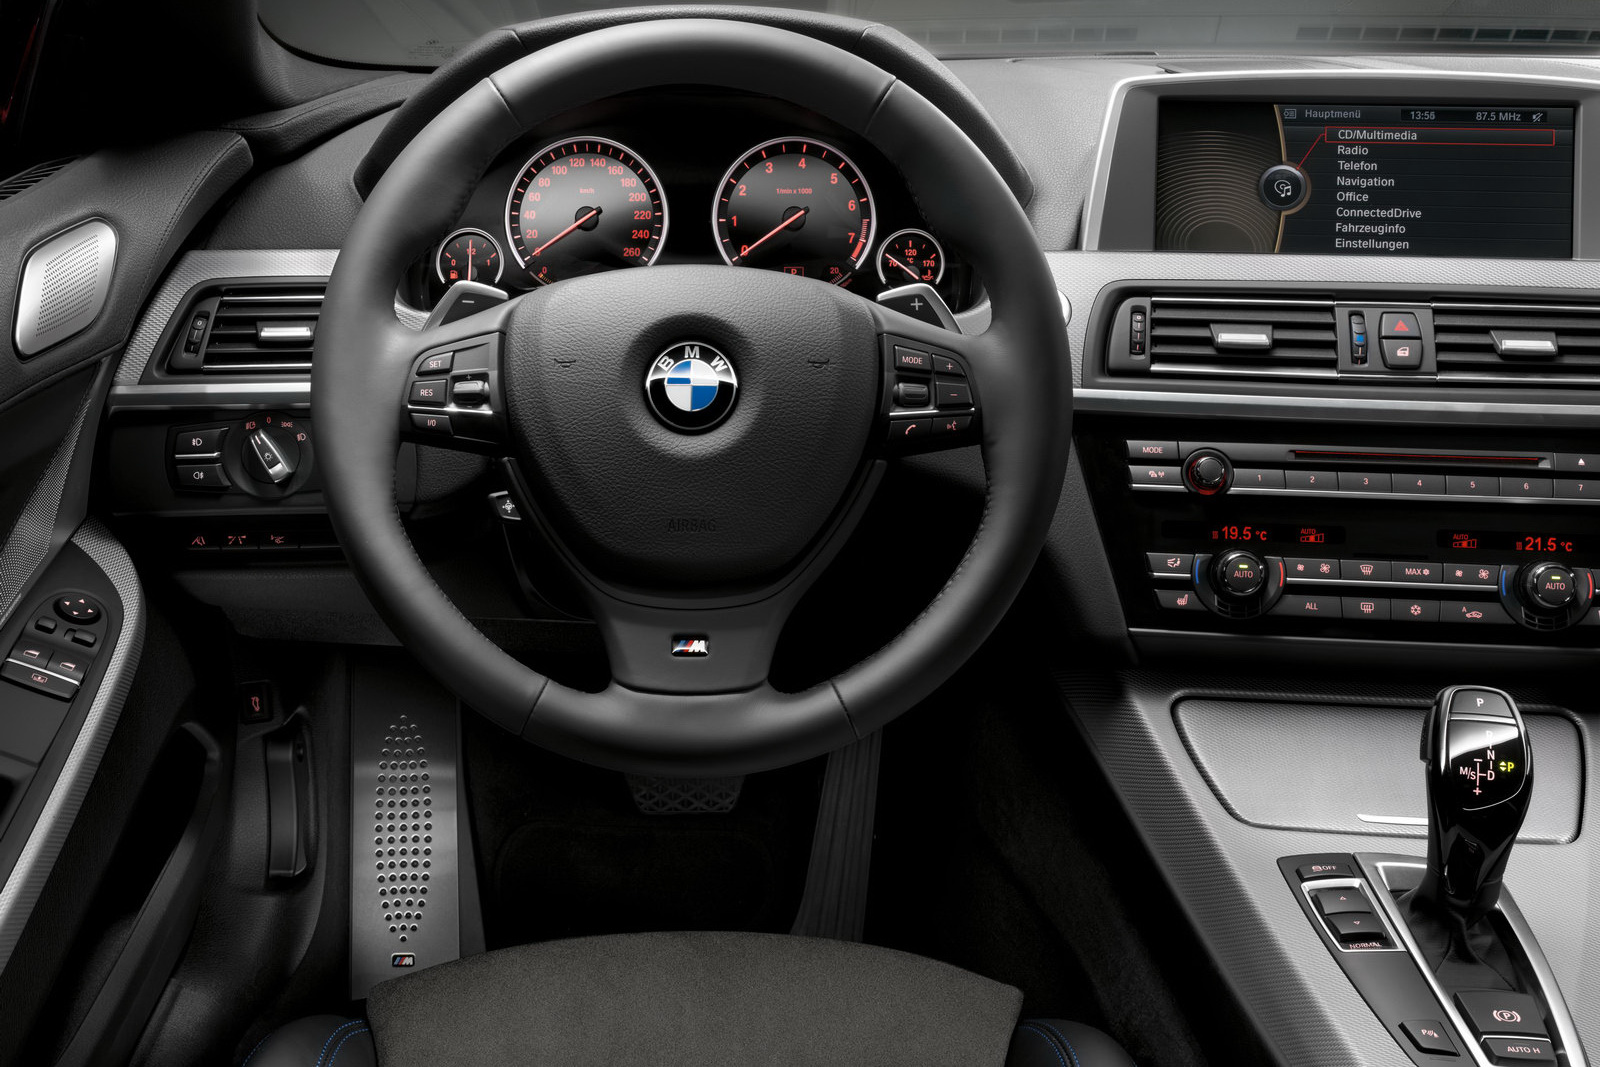 2012 BMW 6 Series with M Sport package